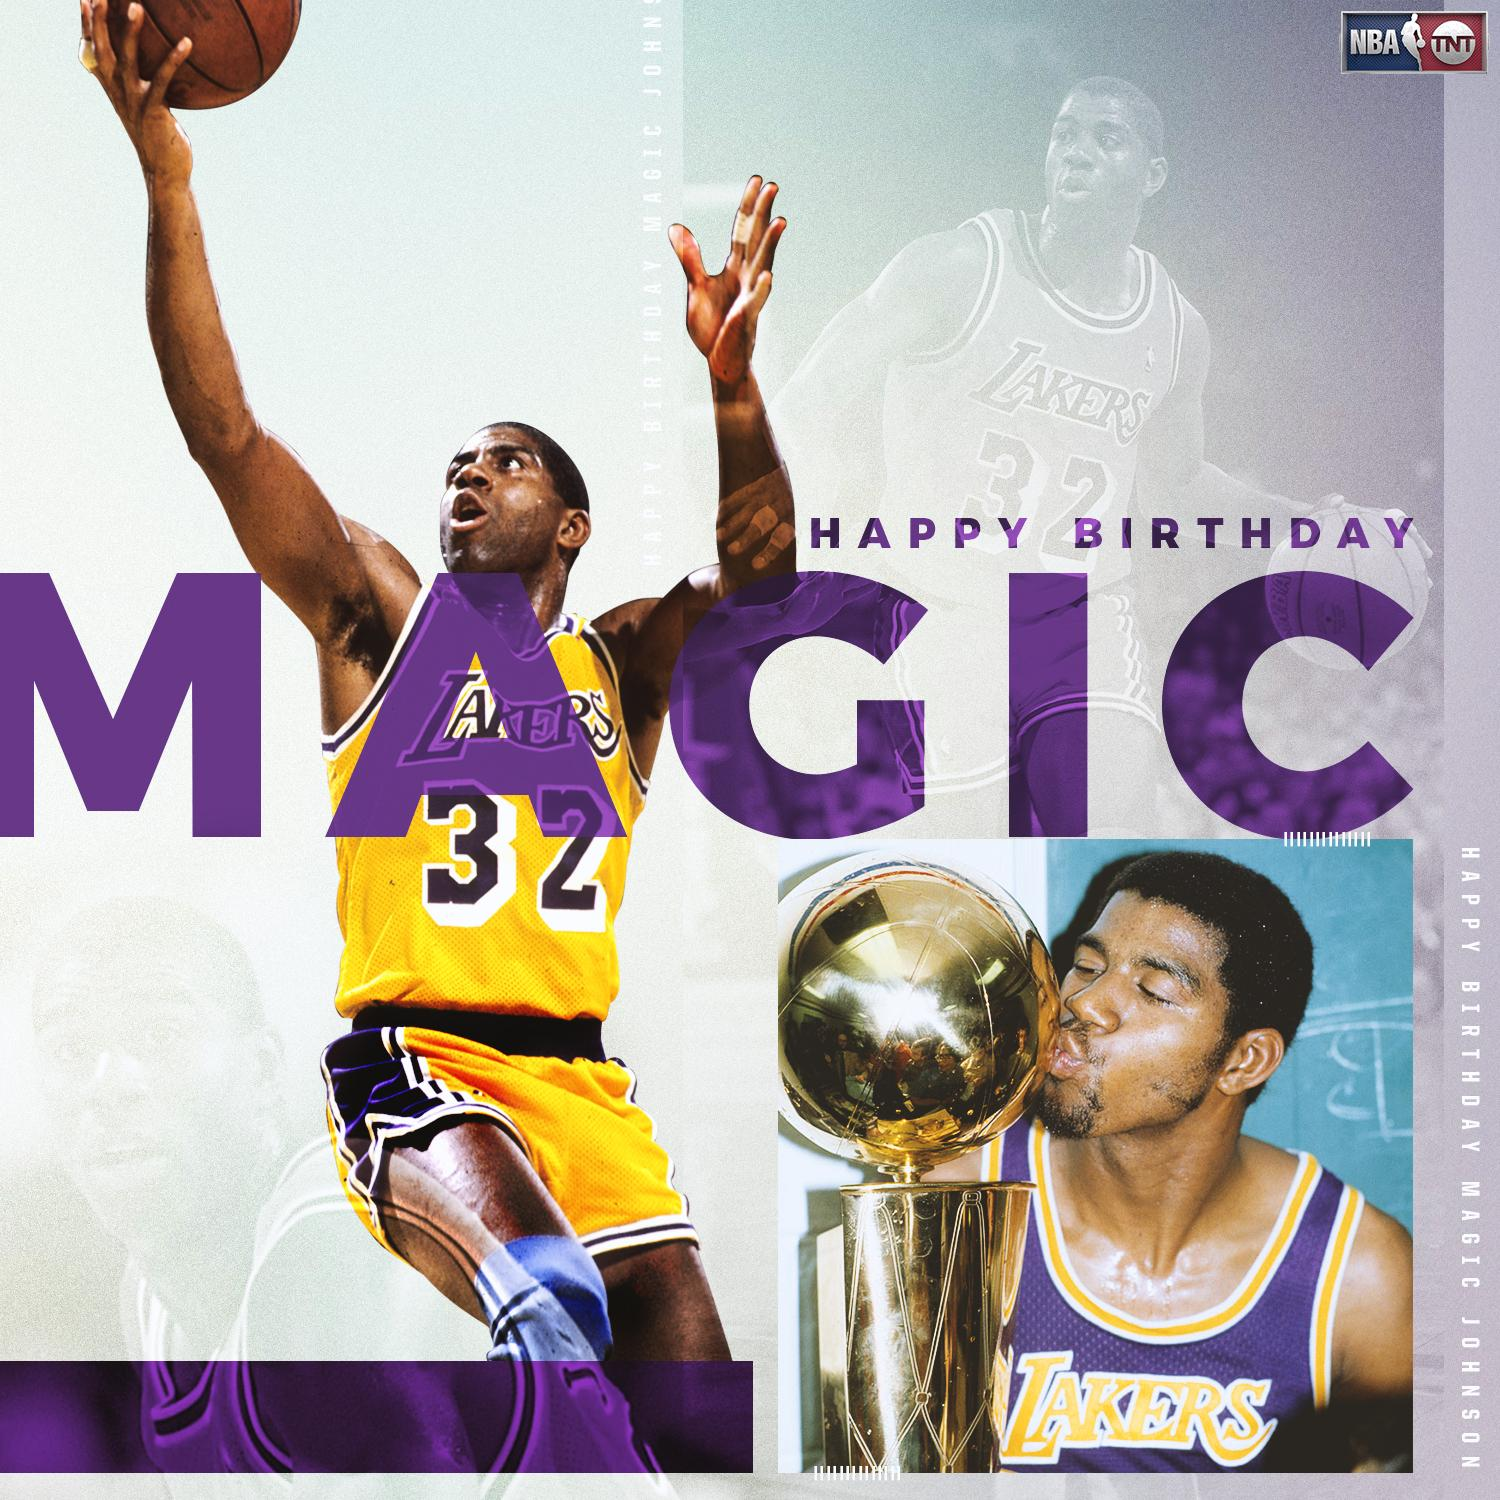 Happy Birthday to 5x NBA champion & Hall of Famer, @MagicJohnson  �� https://t.co/dKPel8ahy1